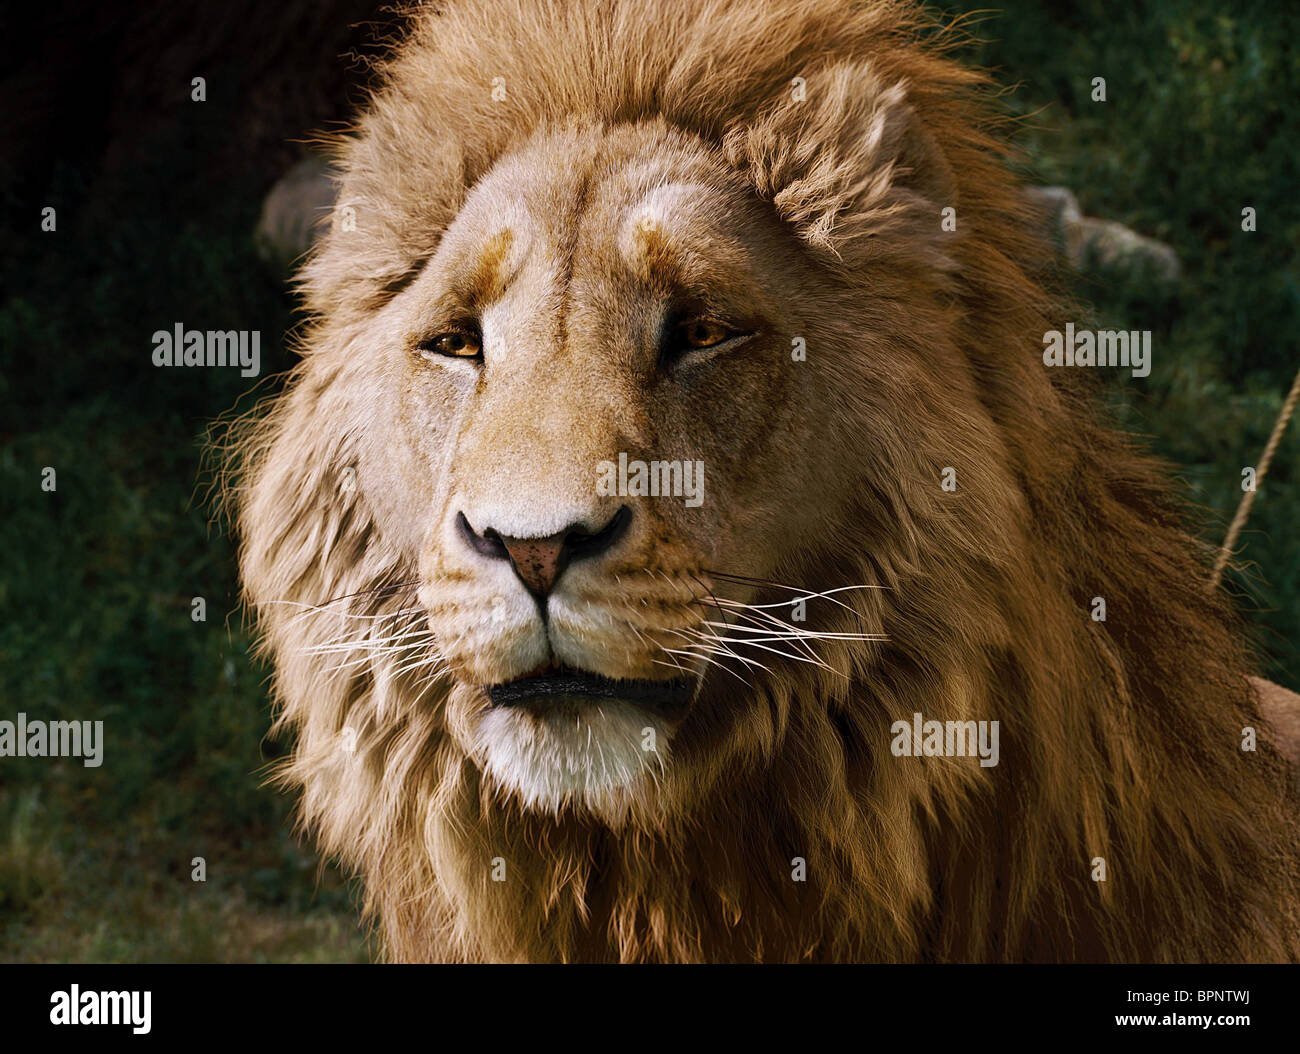 aslan the chronicles of narnia: the lion the witch and the wardrobe